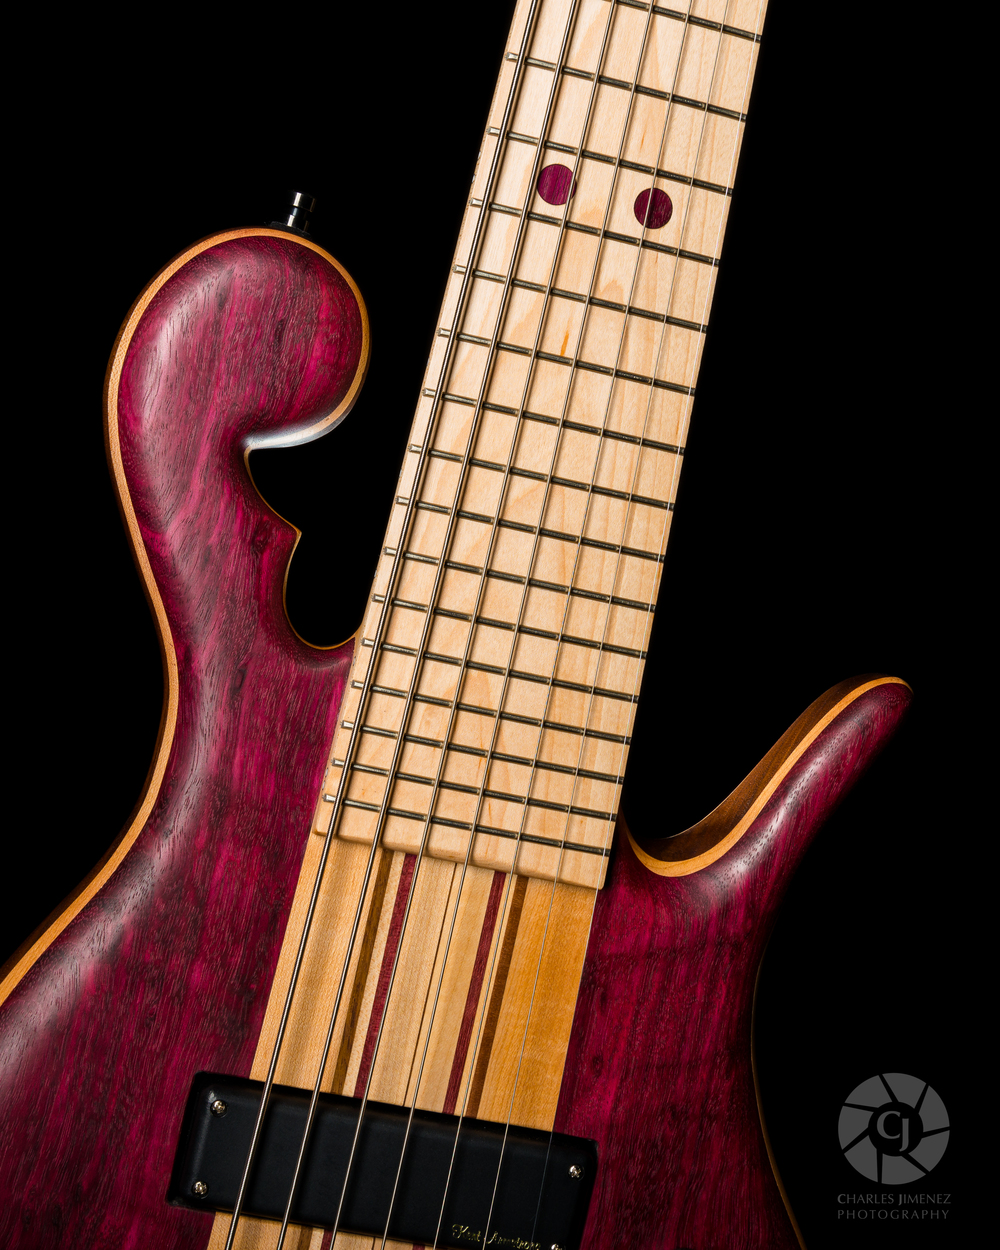 BMT Guitars_Grimace_January 05 2014_08.jpg